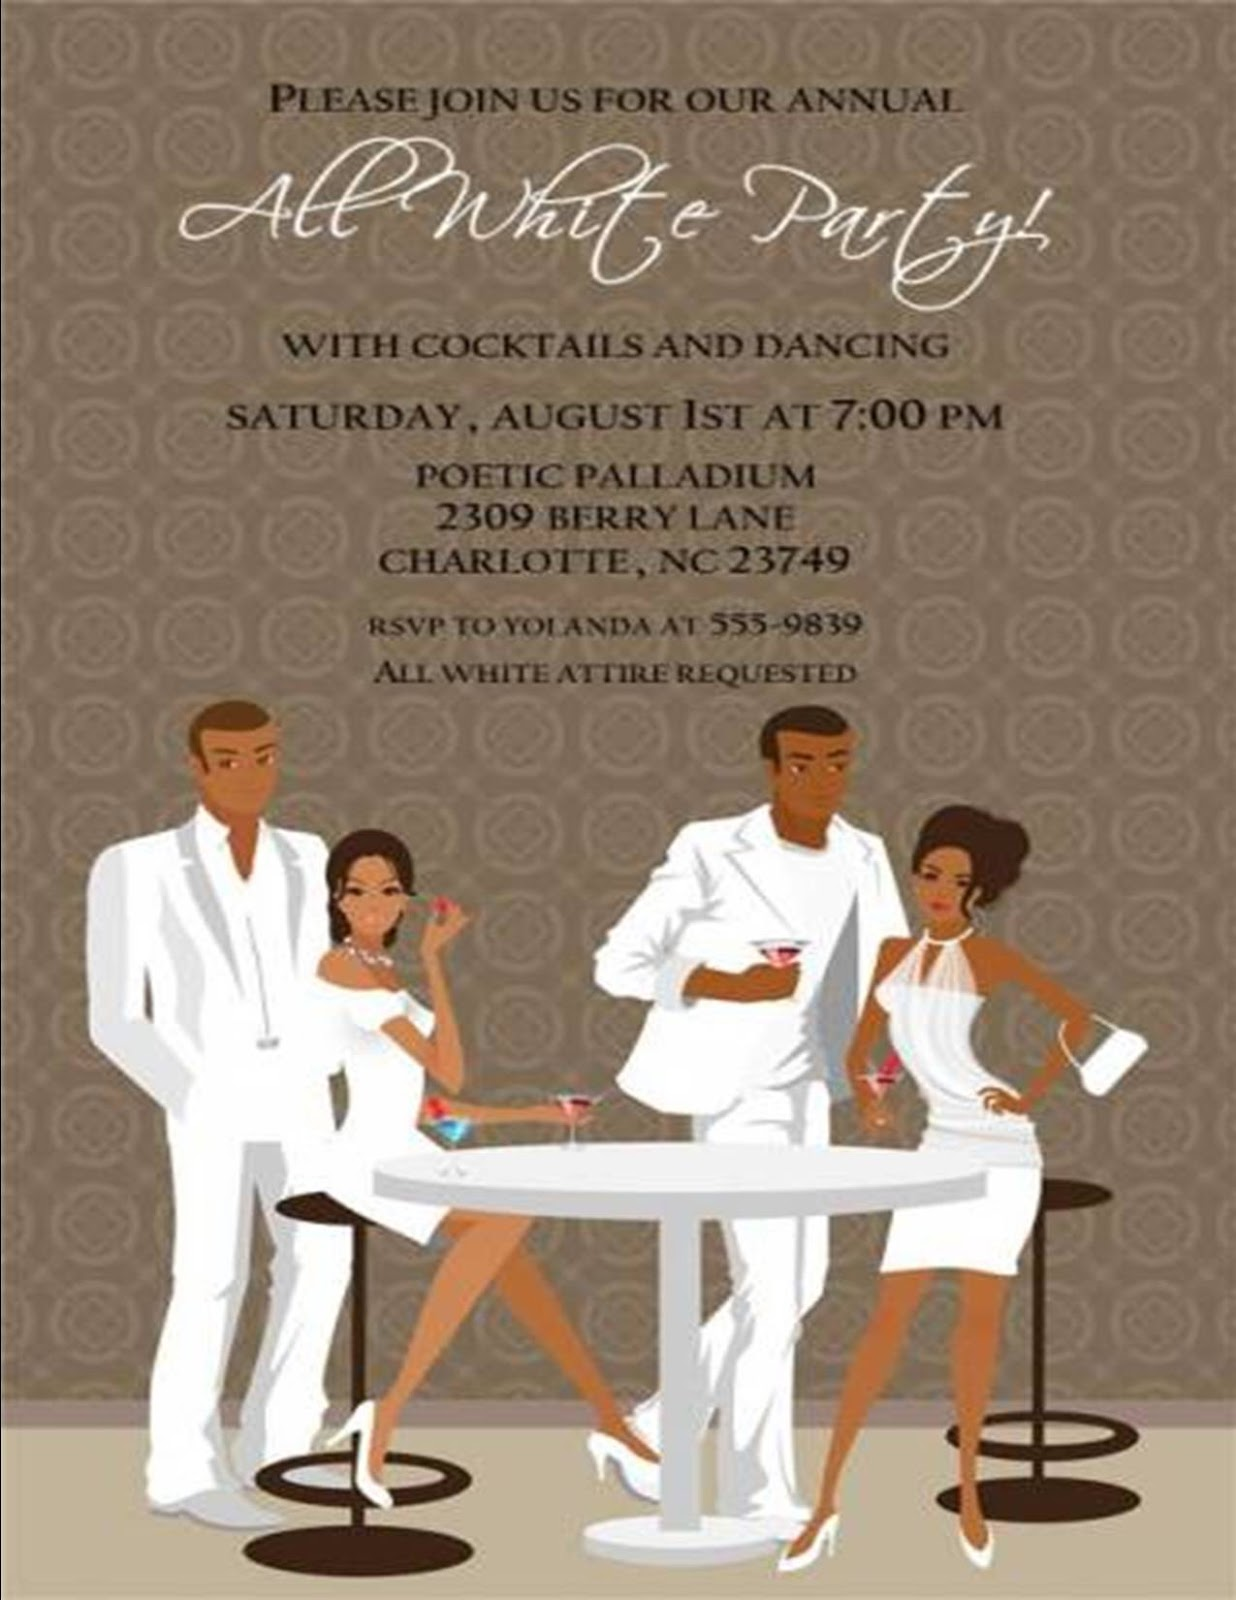 Black And White Attire Party Invitation Wording